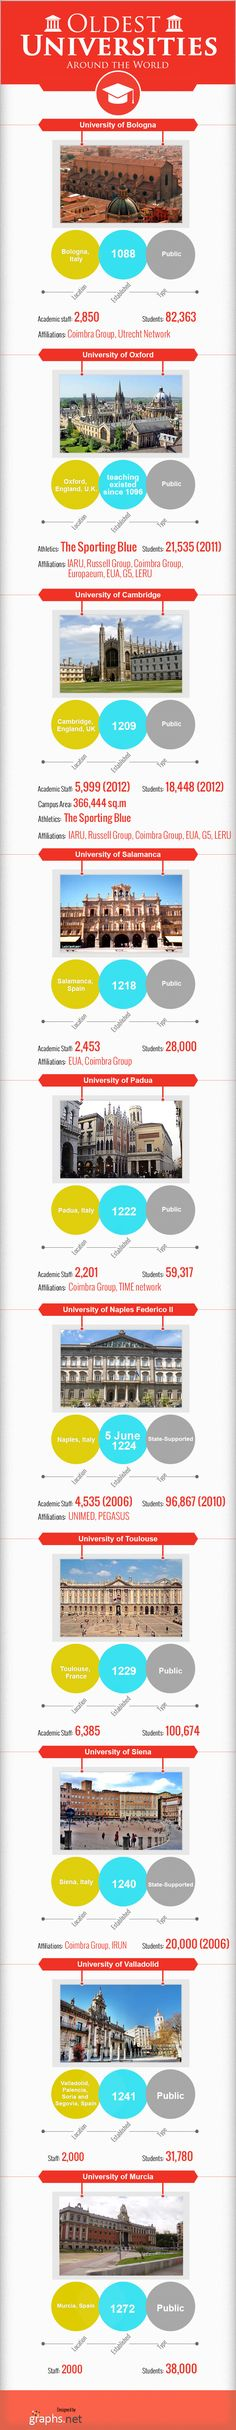 This info graphic provides information on list of oldest universities around the world. University of Bologna is one of the oldest university formed i